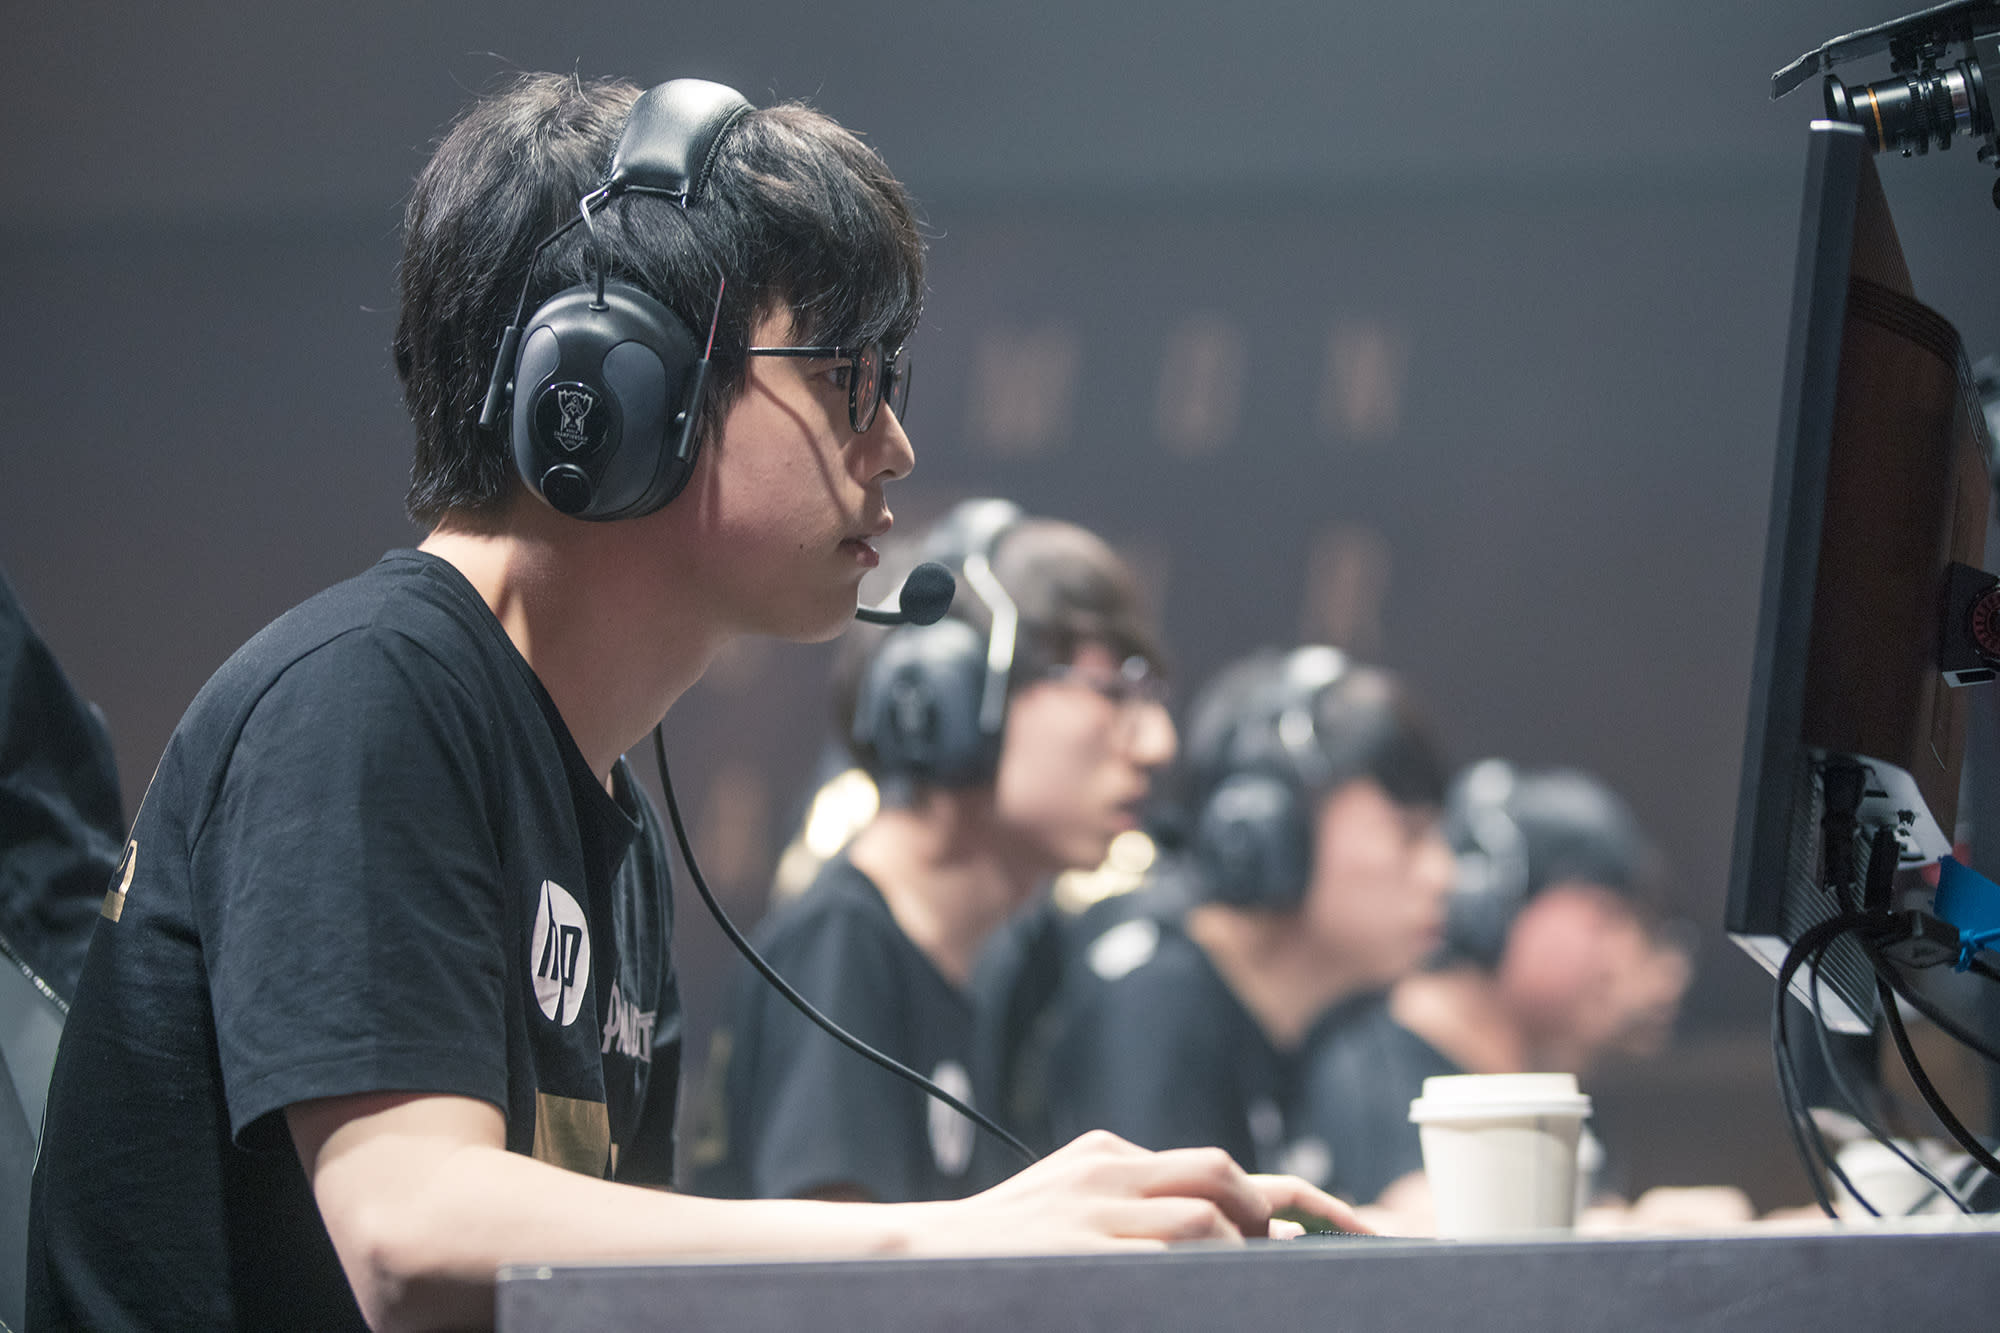 Looper is coming West to join Echo Fox and the North American LCS (Riot Games/Lolesports)